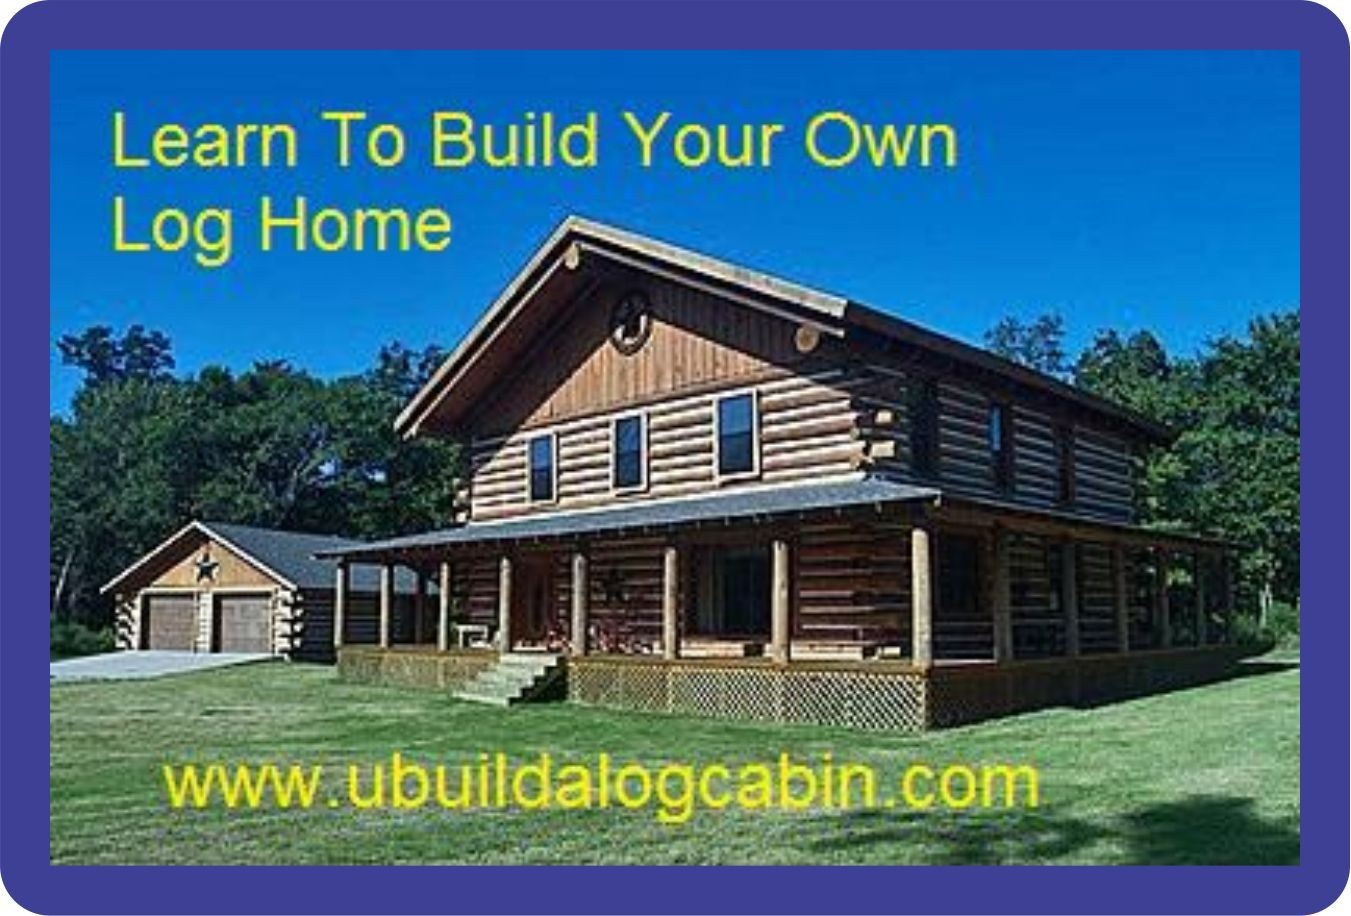 Wonderful image of & Pass Log Home Cabin Instructional DVD No Notching No Log Cabin Kit  with #056FC6 color and 1351x916 pixels